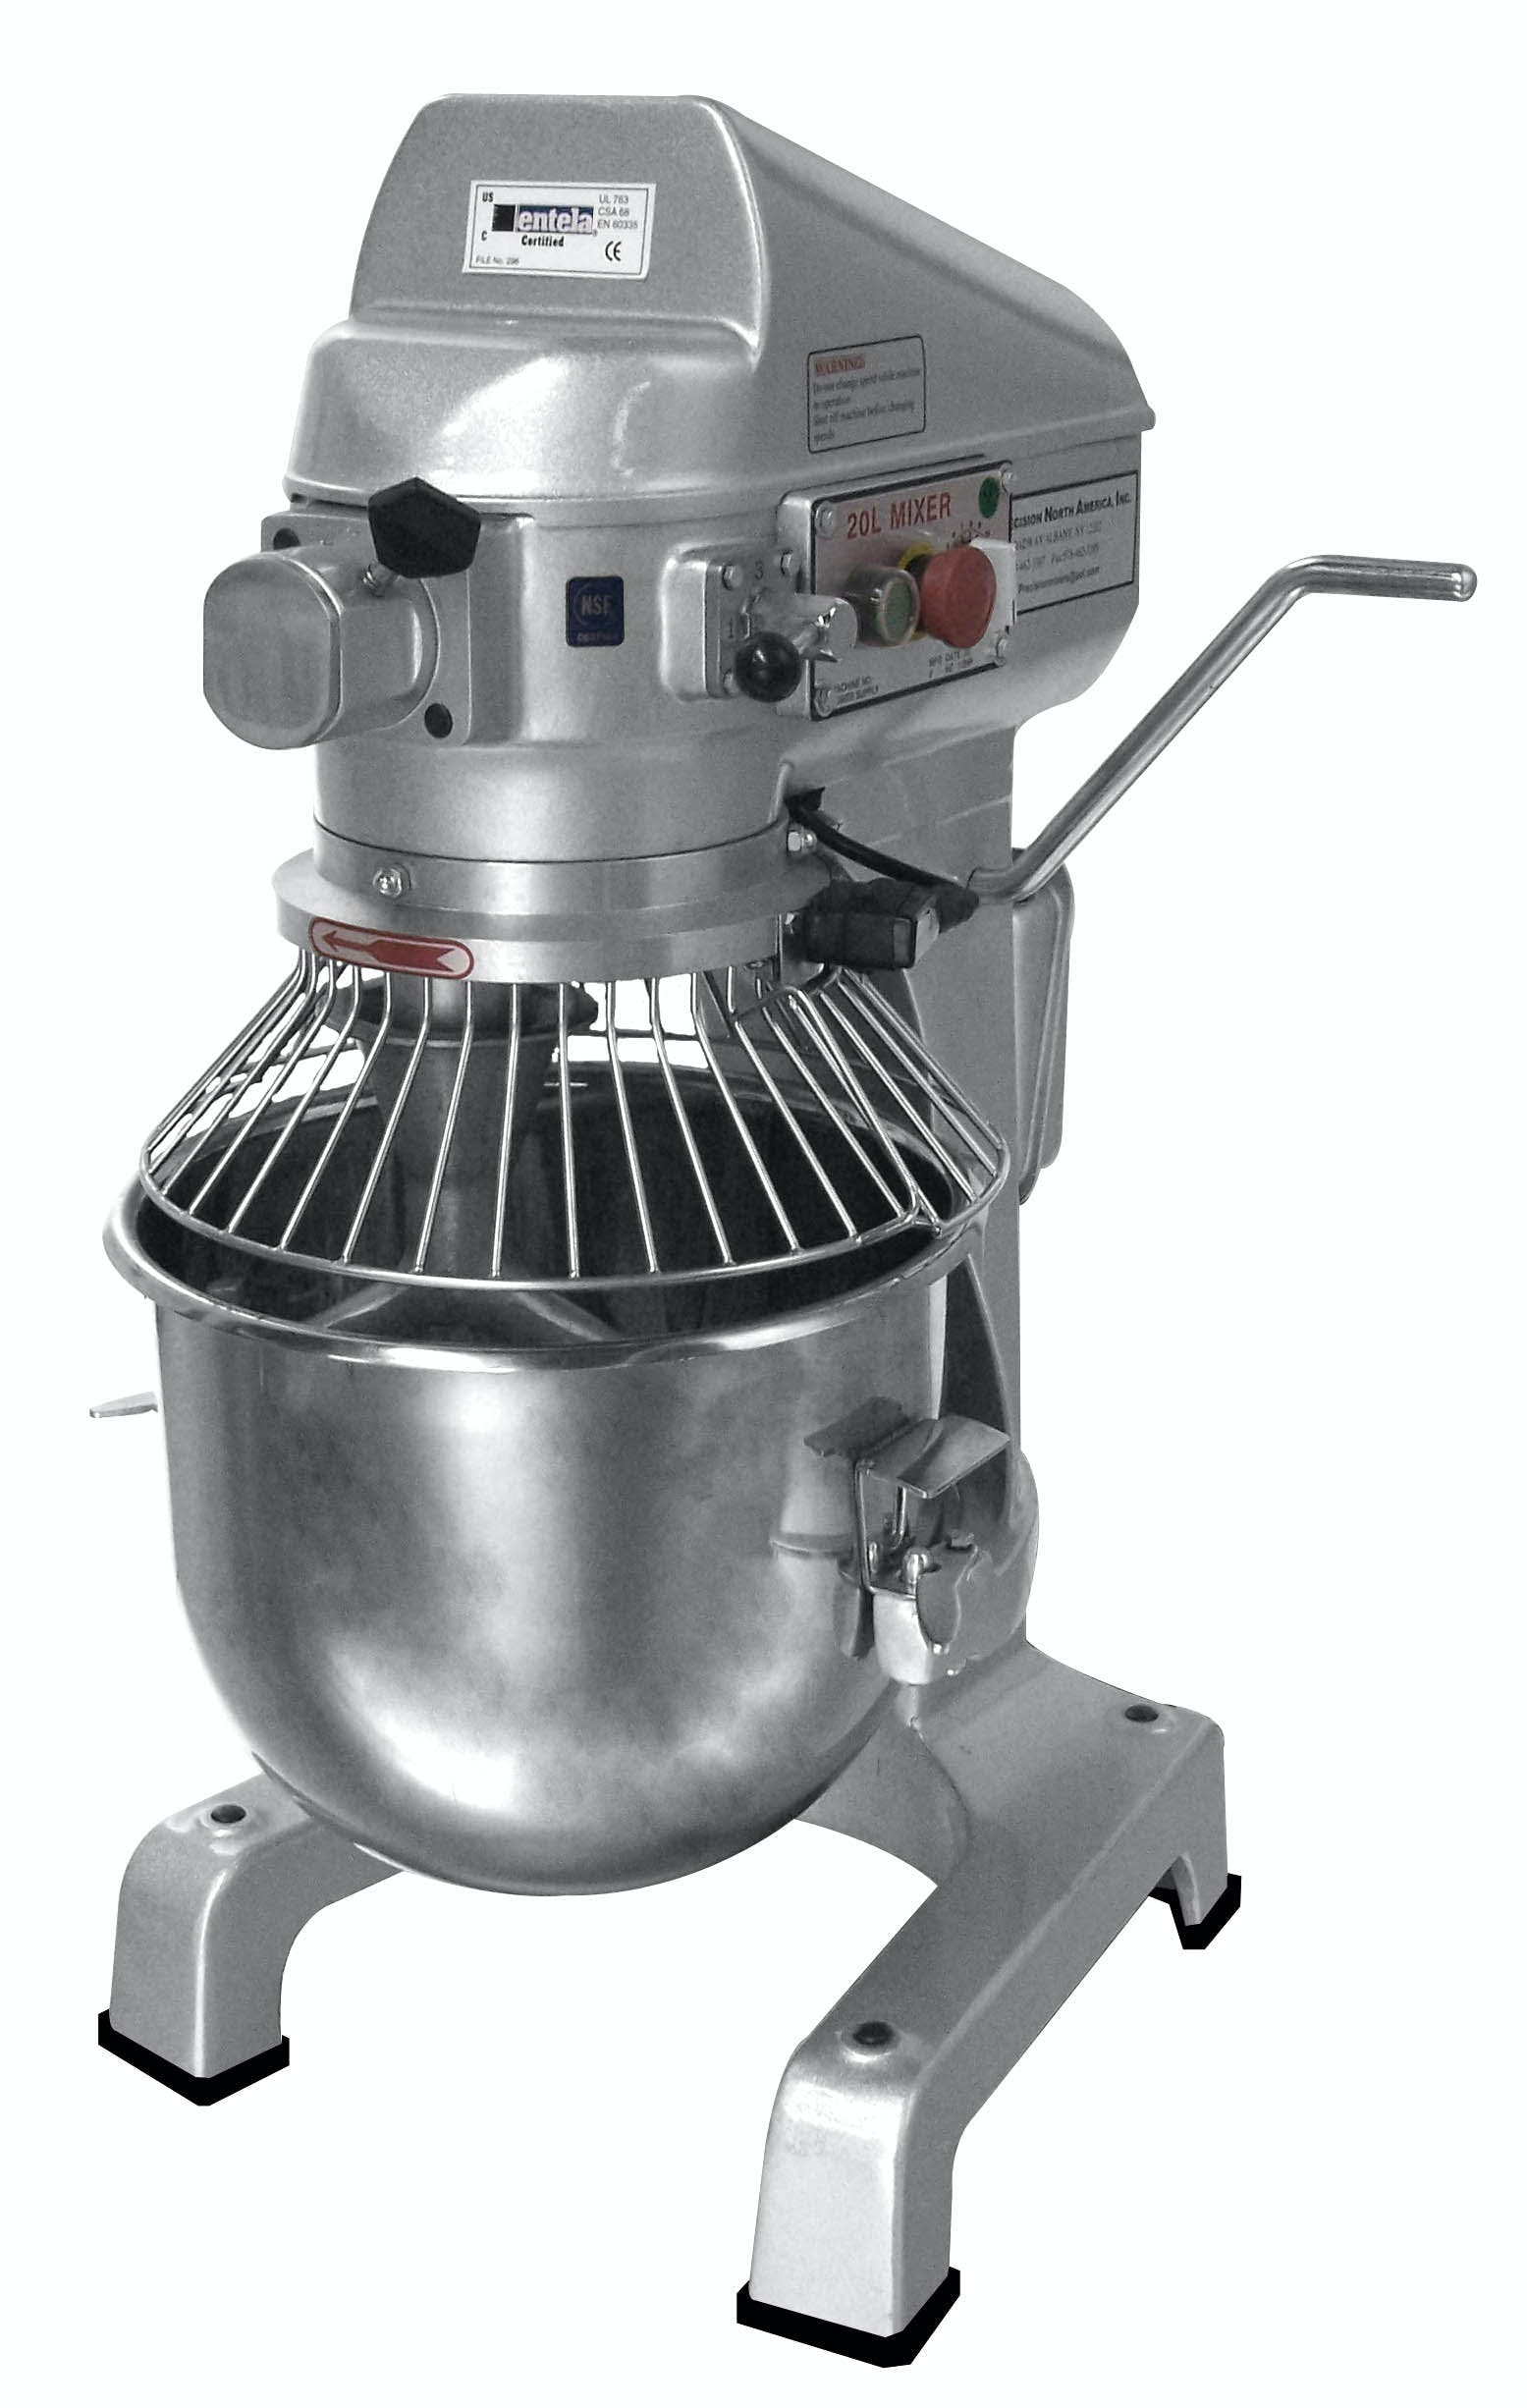 AV-02 Mixer sold by Precision North America Food Machinery